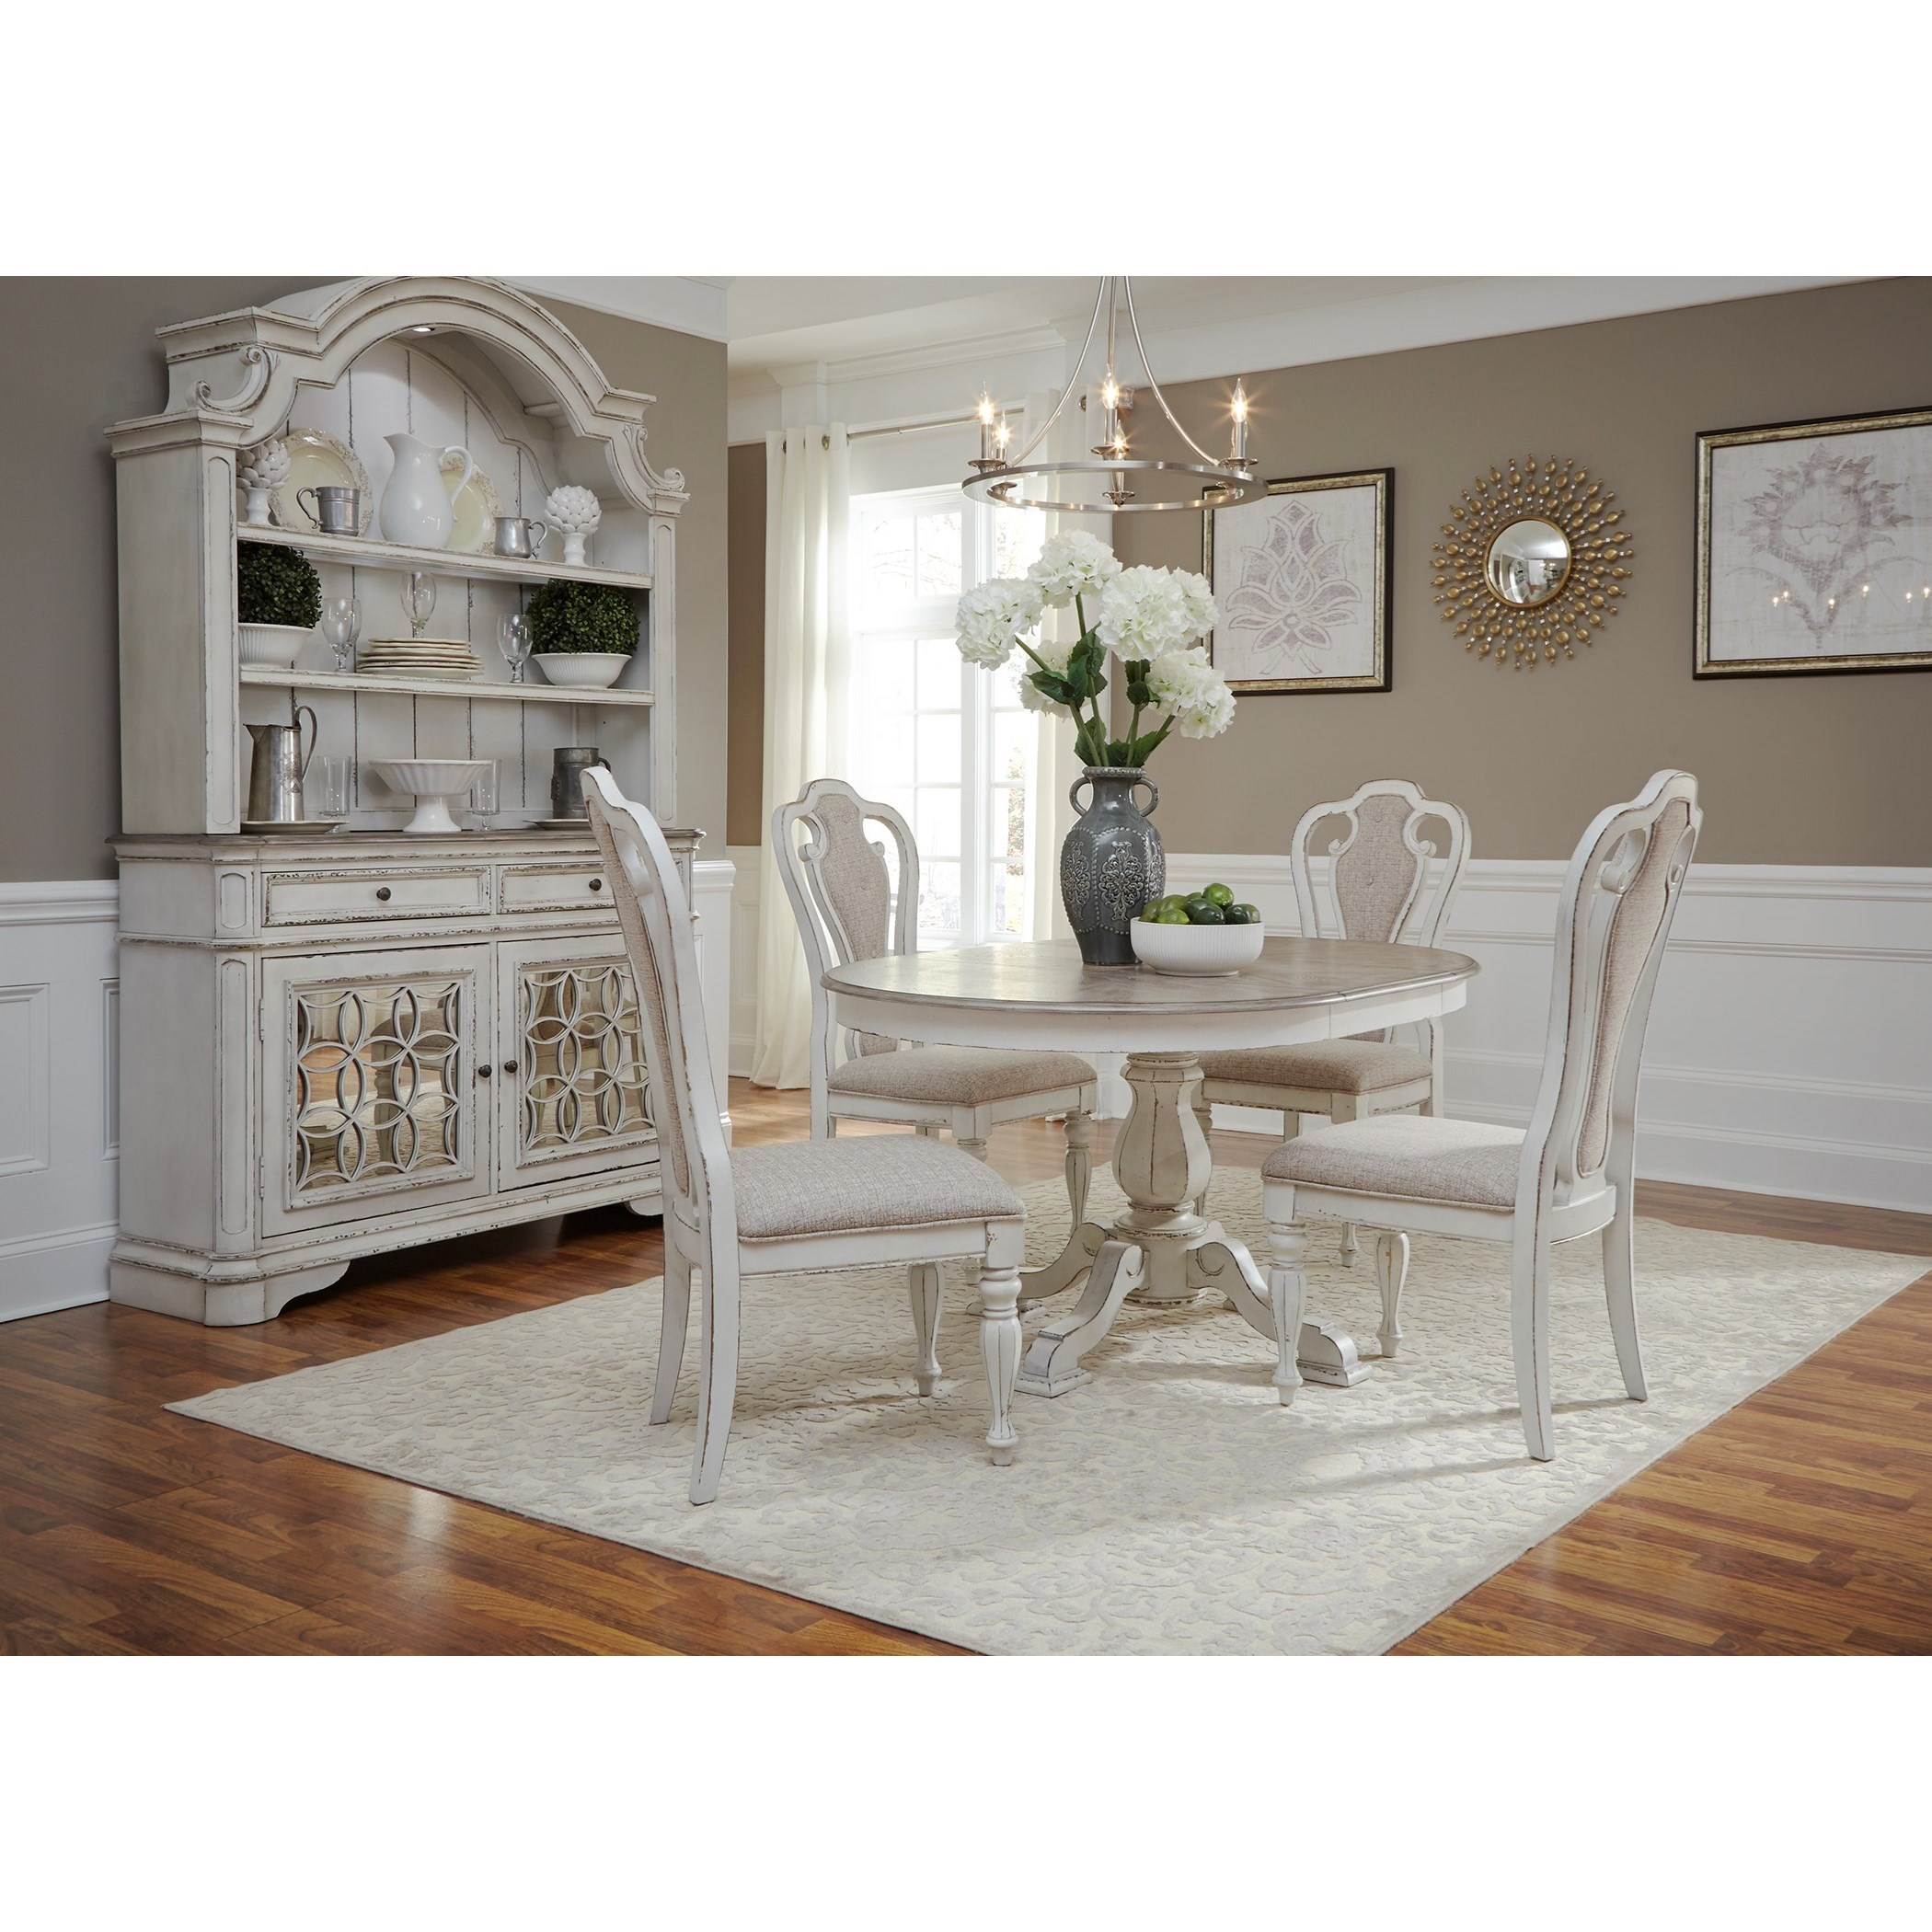 Magnolia Manor Dining Dining Room Group by Liberty Furniture at Northeast Factory Direct